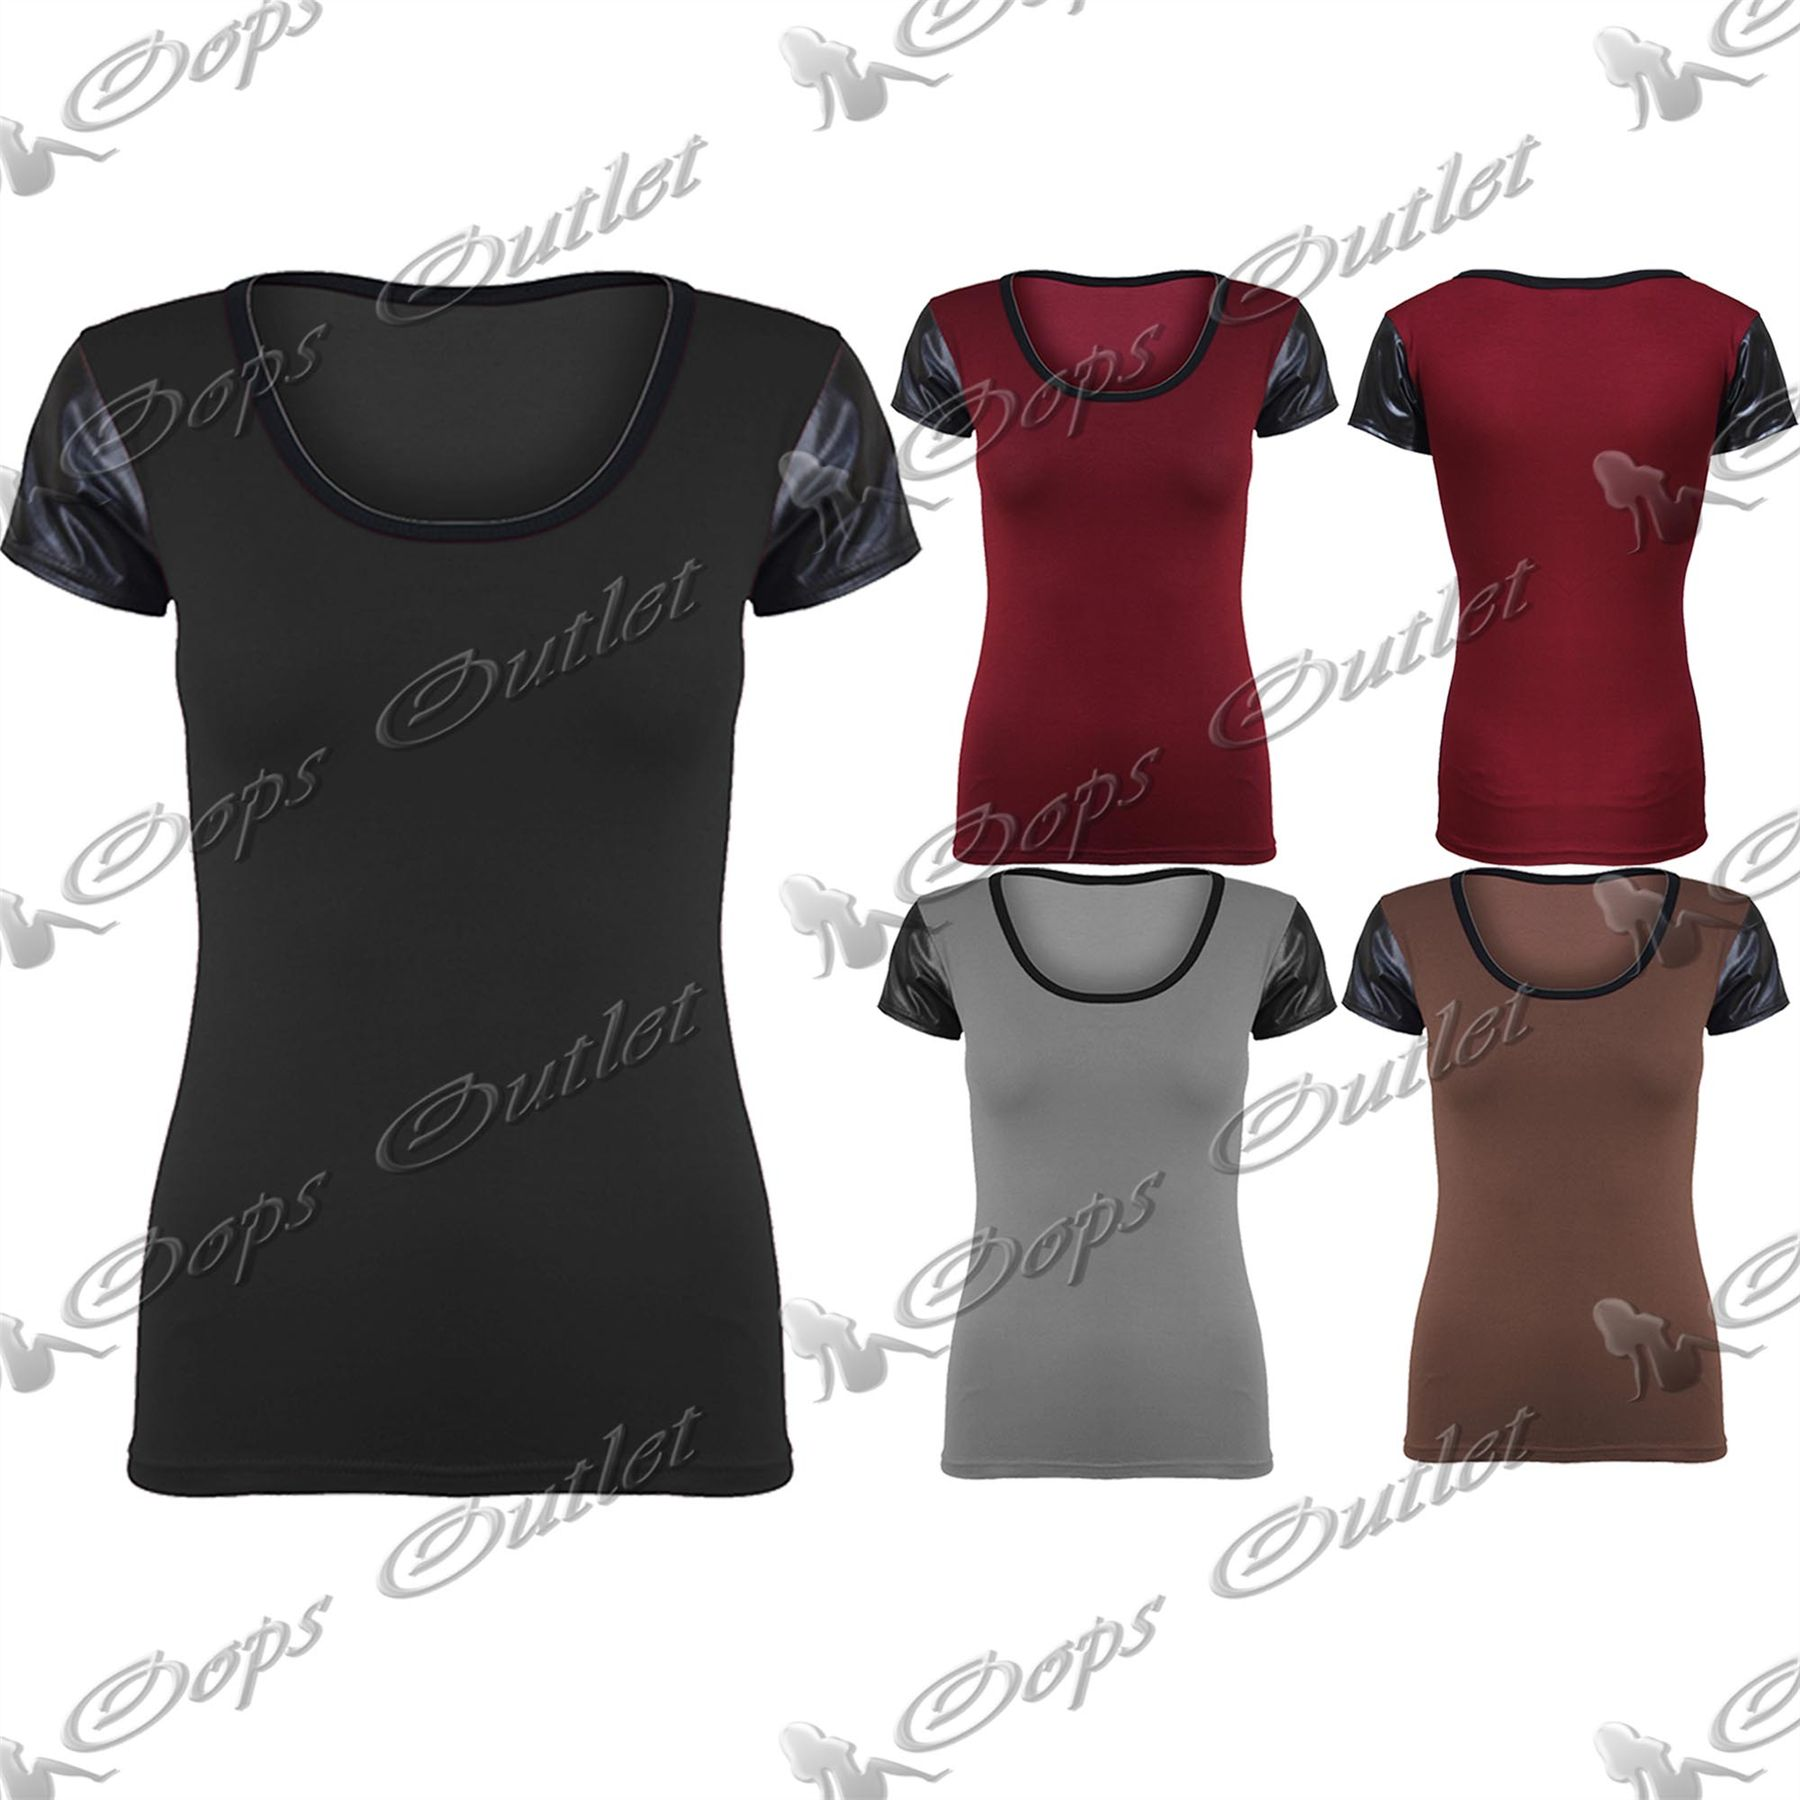 haut t shirt femme pvc aspect mouill manches courtes col rond uni neuf ebay. Black Bedroom Furniture Sets. Home Design Ideas